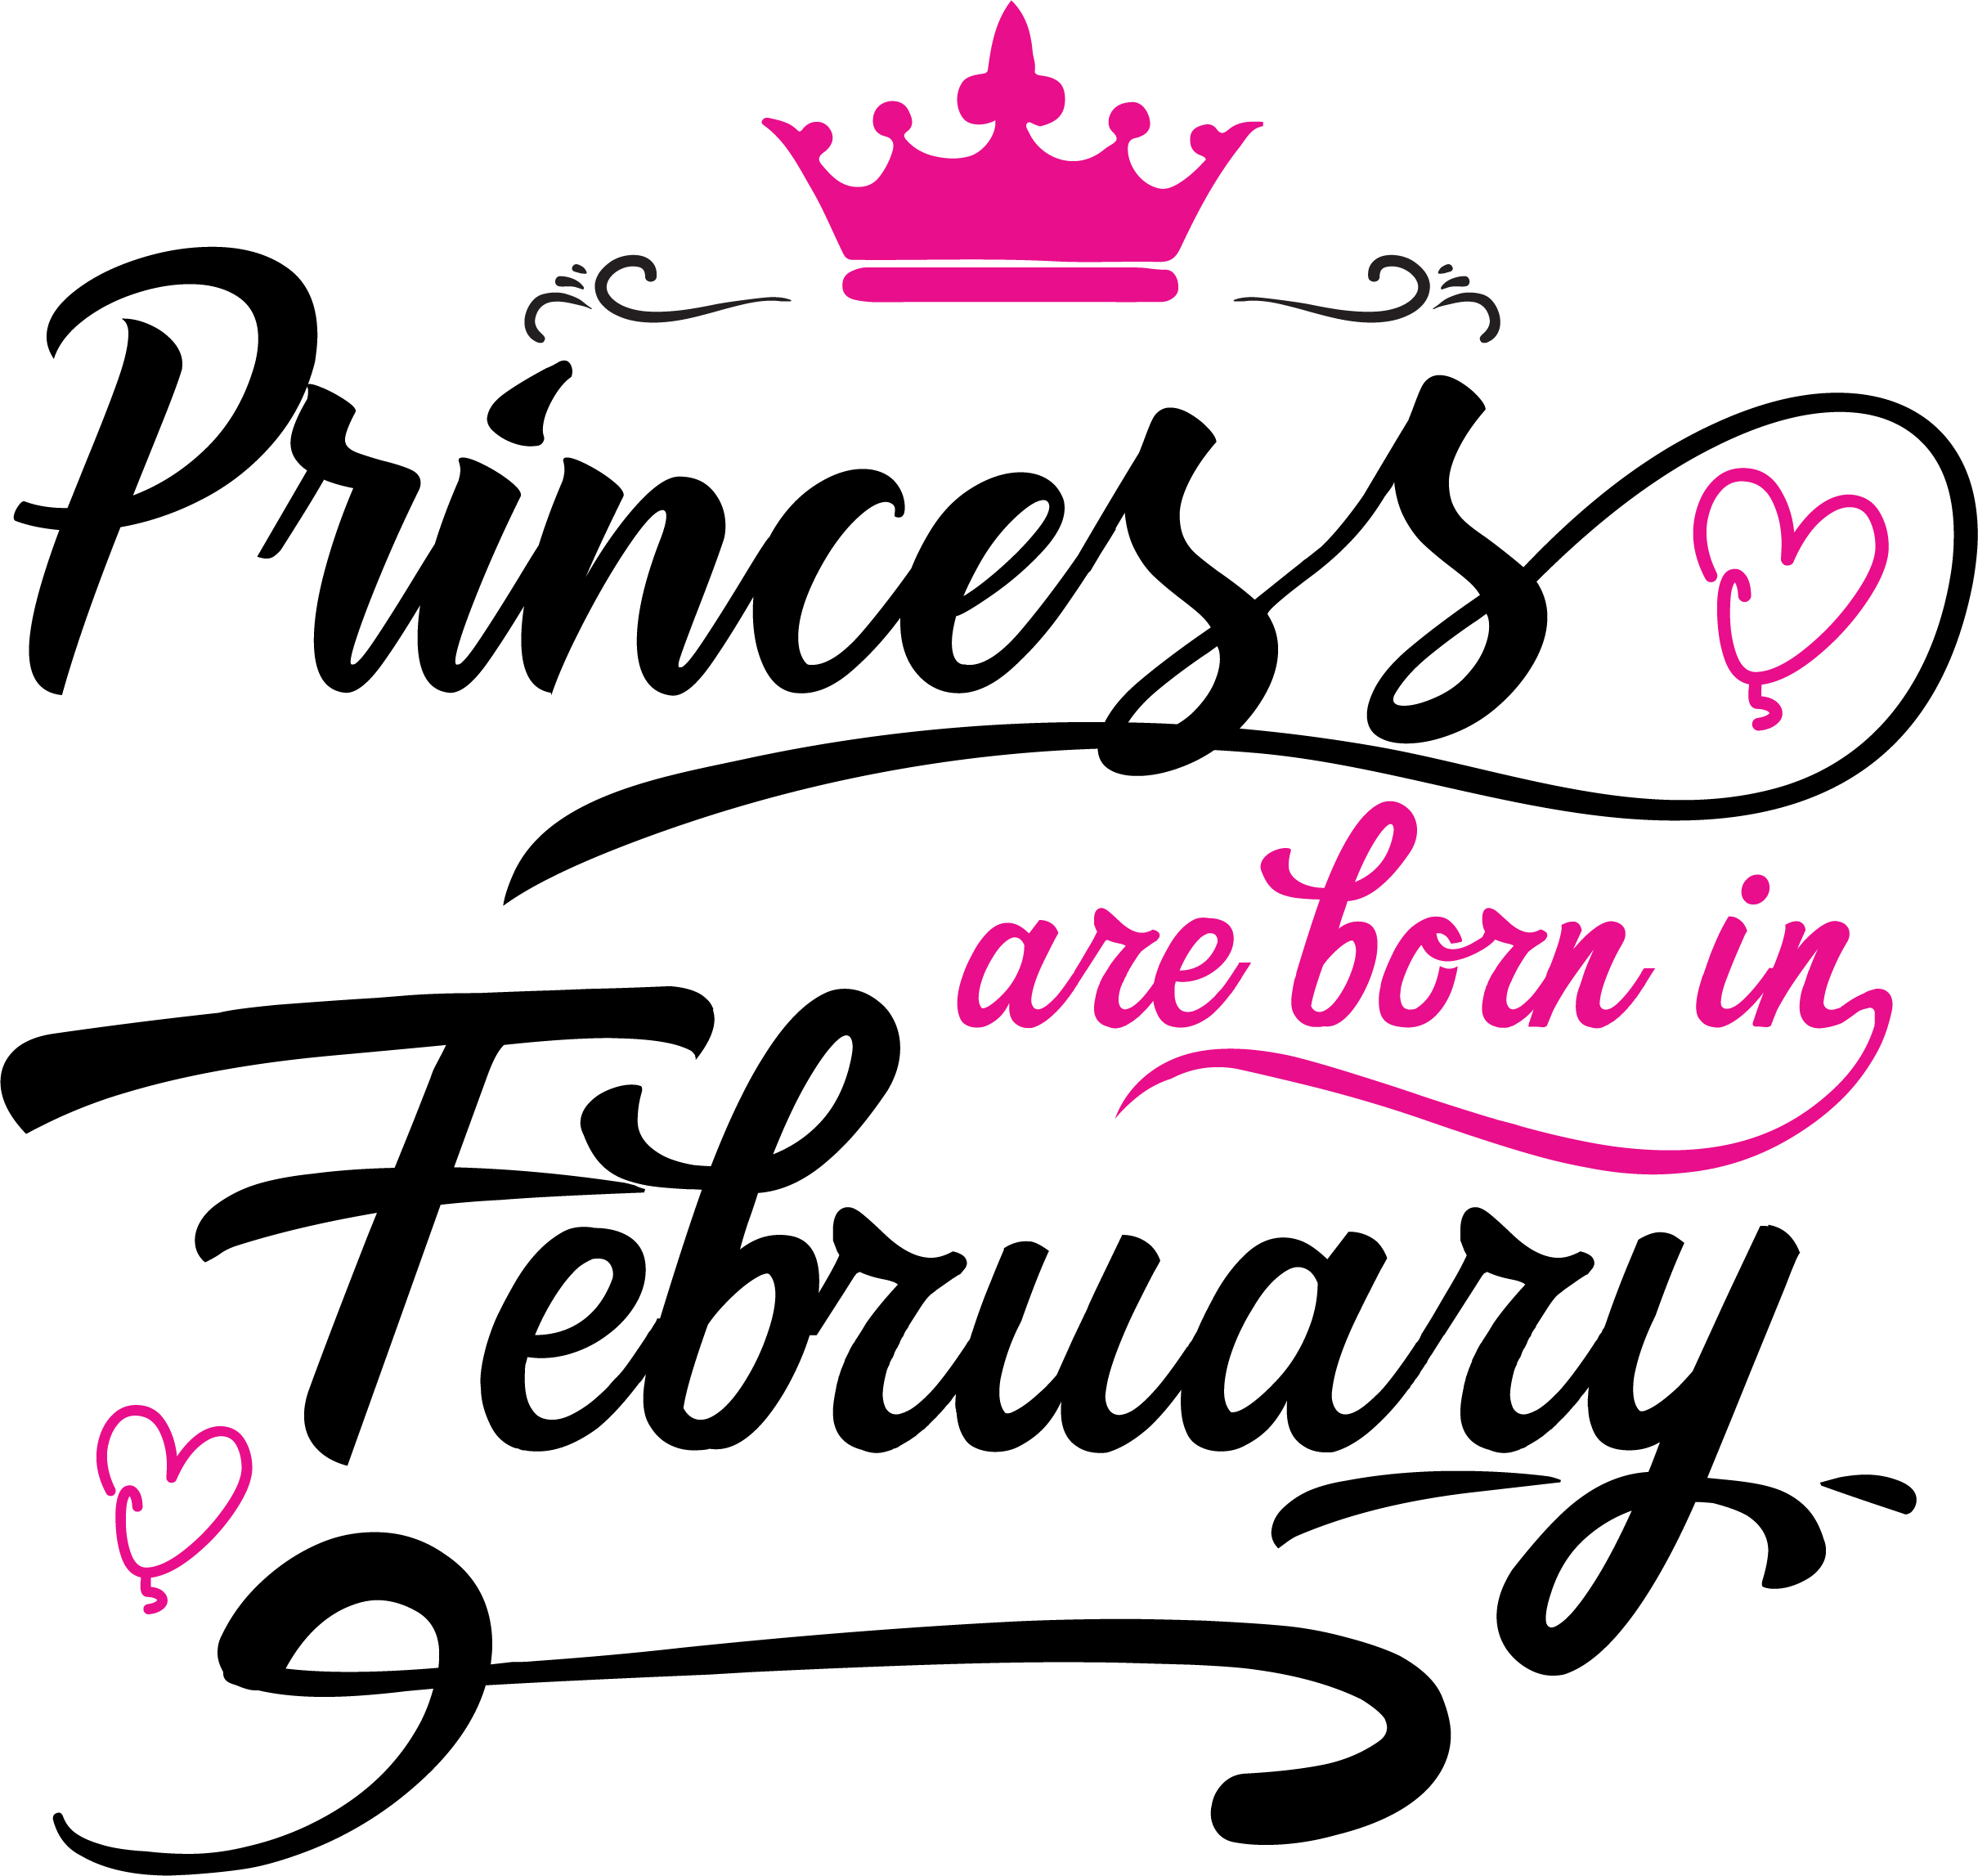 Princess are born in February Svg,Dxf,Png,Jpg,Eps vector file example image 2